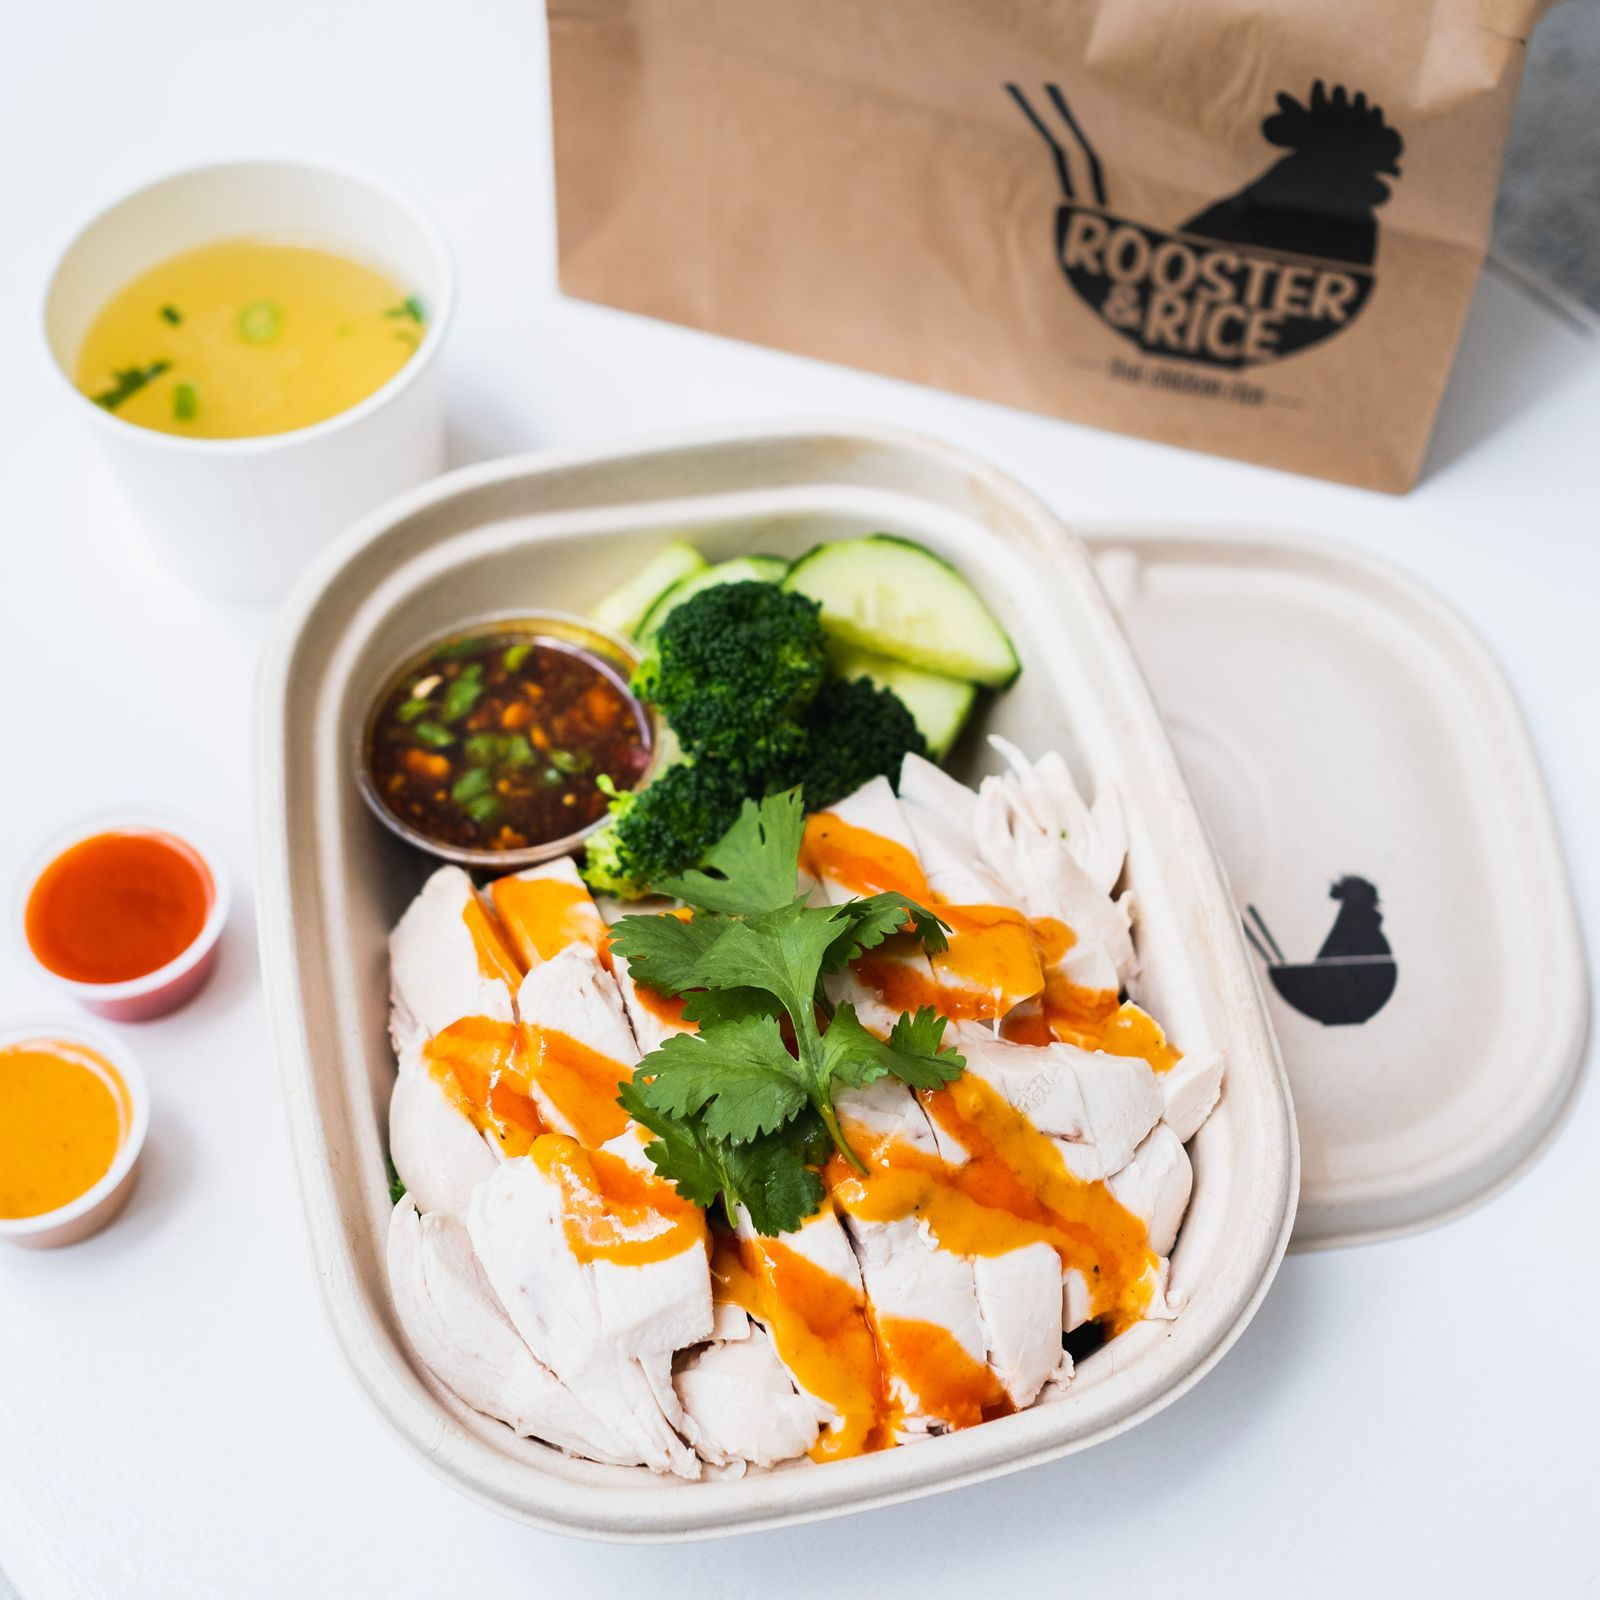 Rooster & Rice Launches Franchise Opportunities, Sets Sights on National Expansion